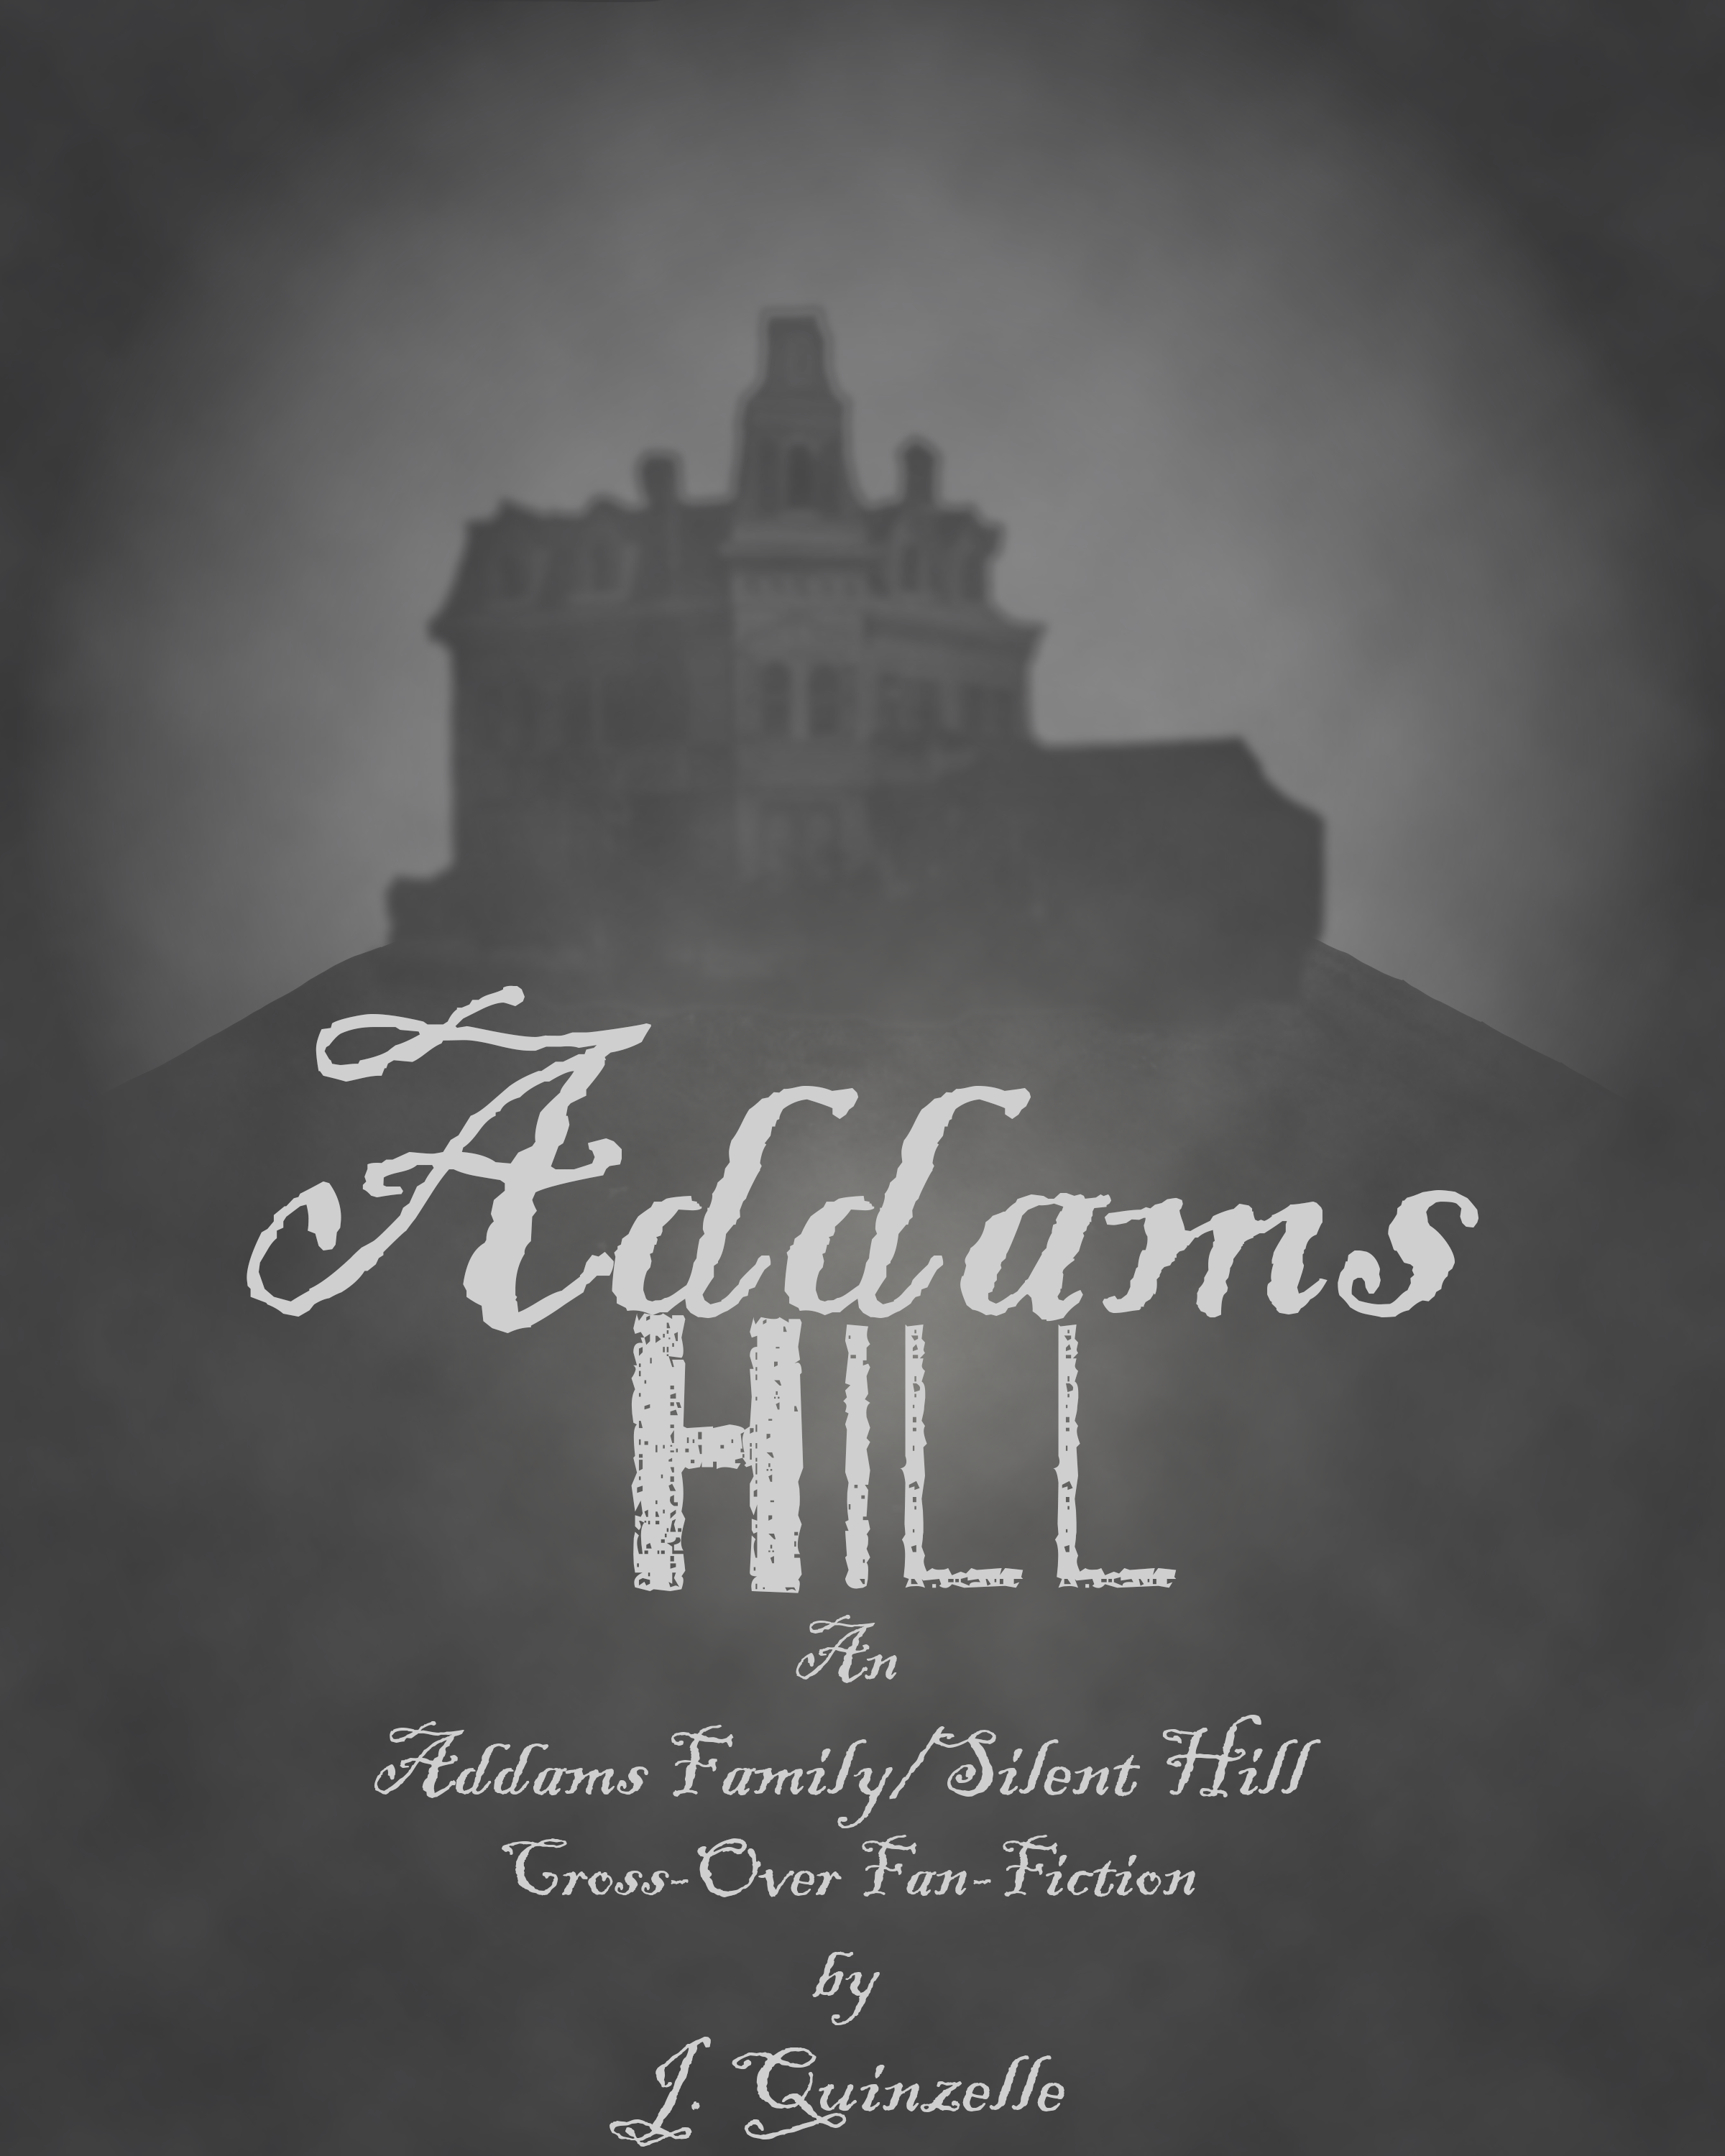 Decades after the children grew up and left the Addams Mansion, Pubert returns to the family home. Telling his parents of his death and reincarnation, Gomez and Morticia are intrigued enough to want to visit this strange land. Silent Hill will reunite the Addams Family for a vacation like no other.